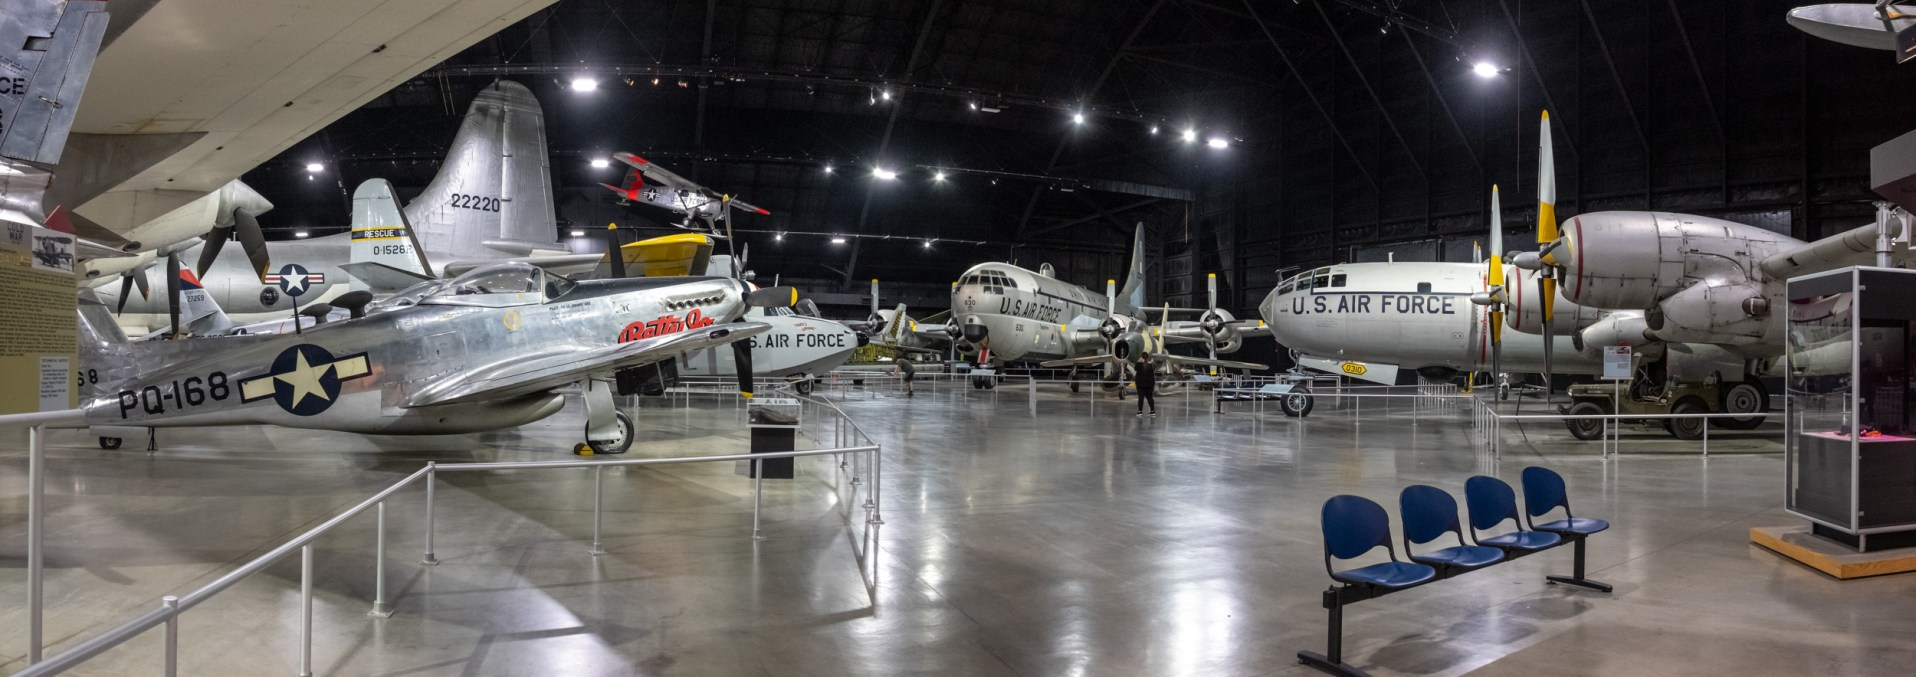 Lots of 'planes at the National Museum of the US Air Force. Center frame: Boeing KC-97L Stratofreighter. Right: Boeing WB-50D Superfortress. Copyright © 2018 Gary Allman, all rights reserved.